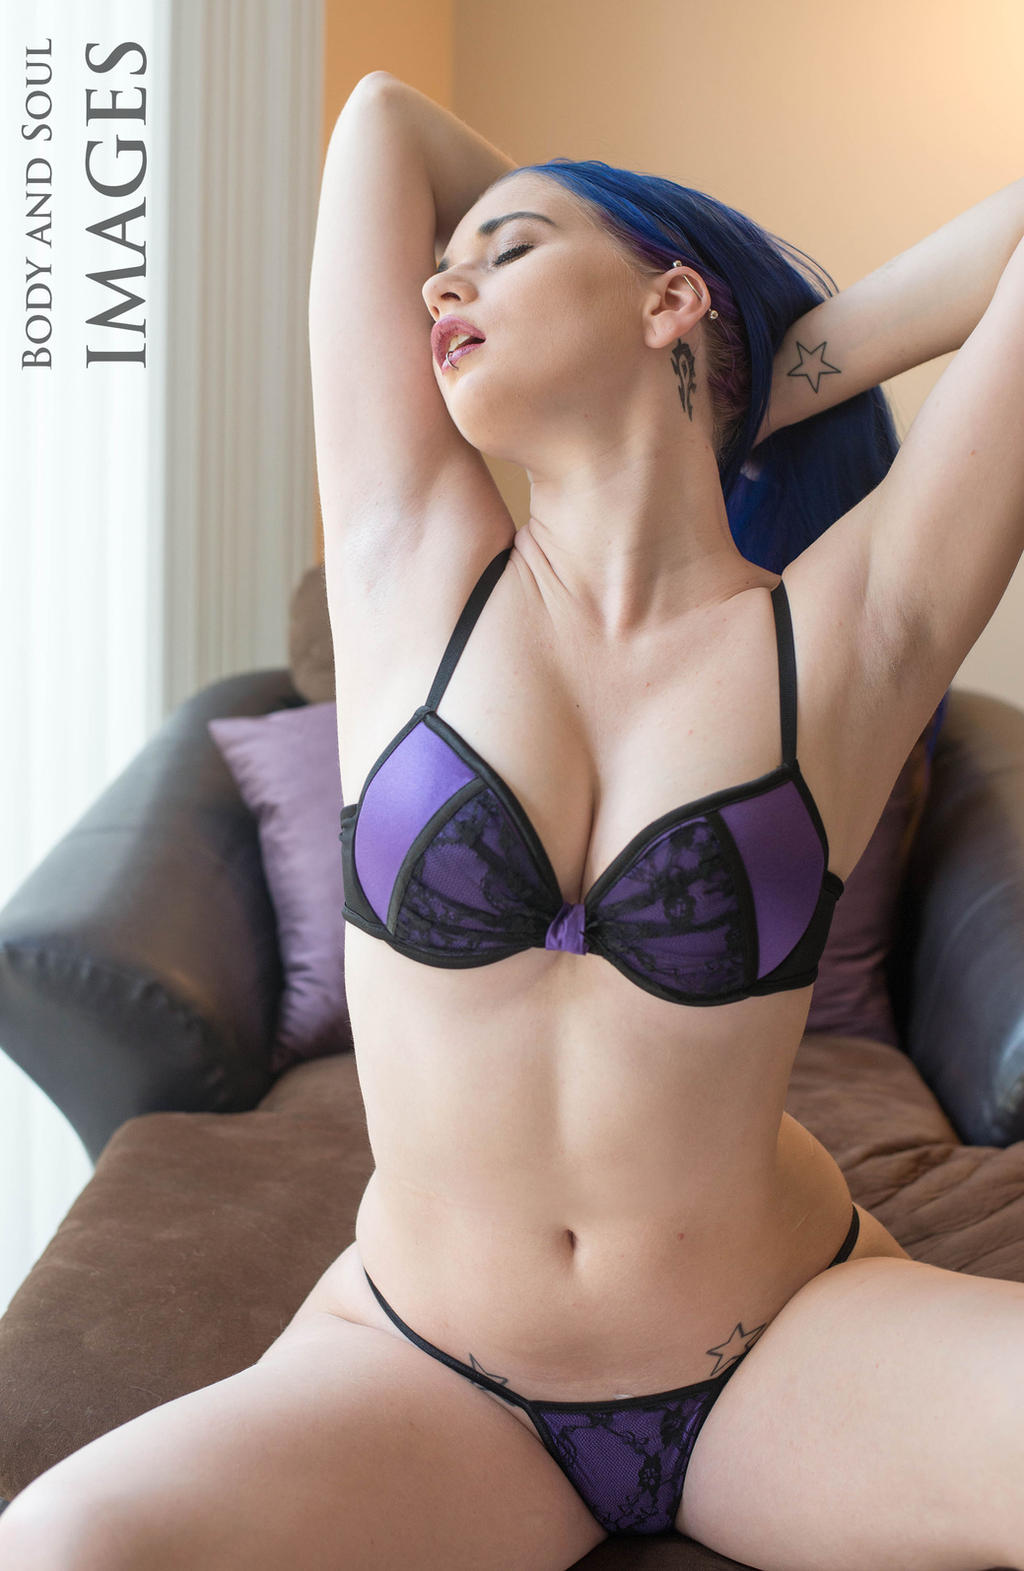 Purple And Lace 4 by MordsithCara